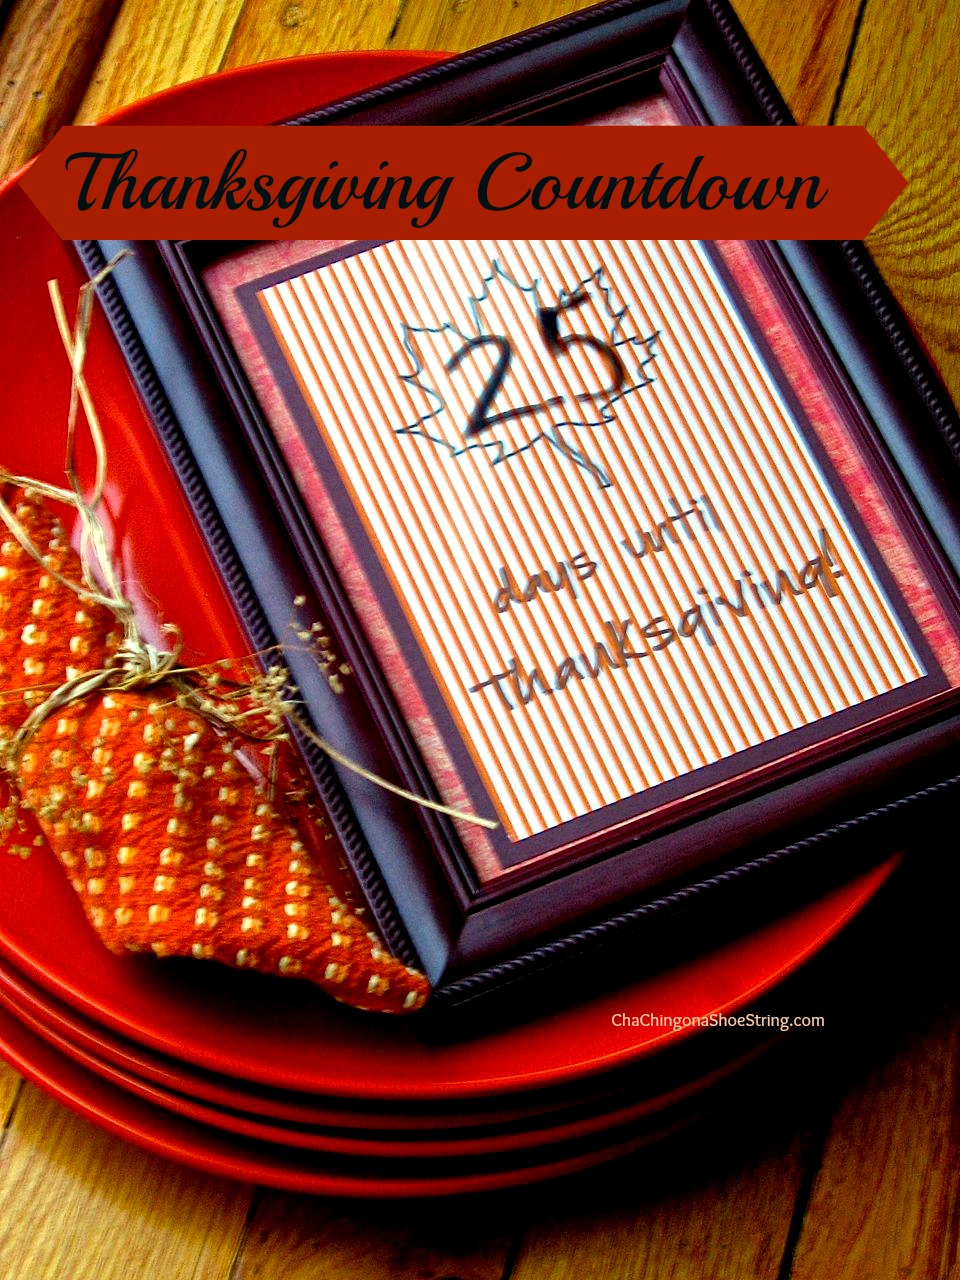 Pic Countdown to Thanksgiving